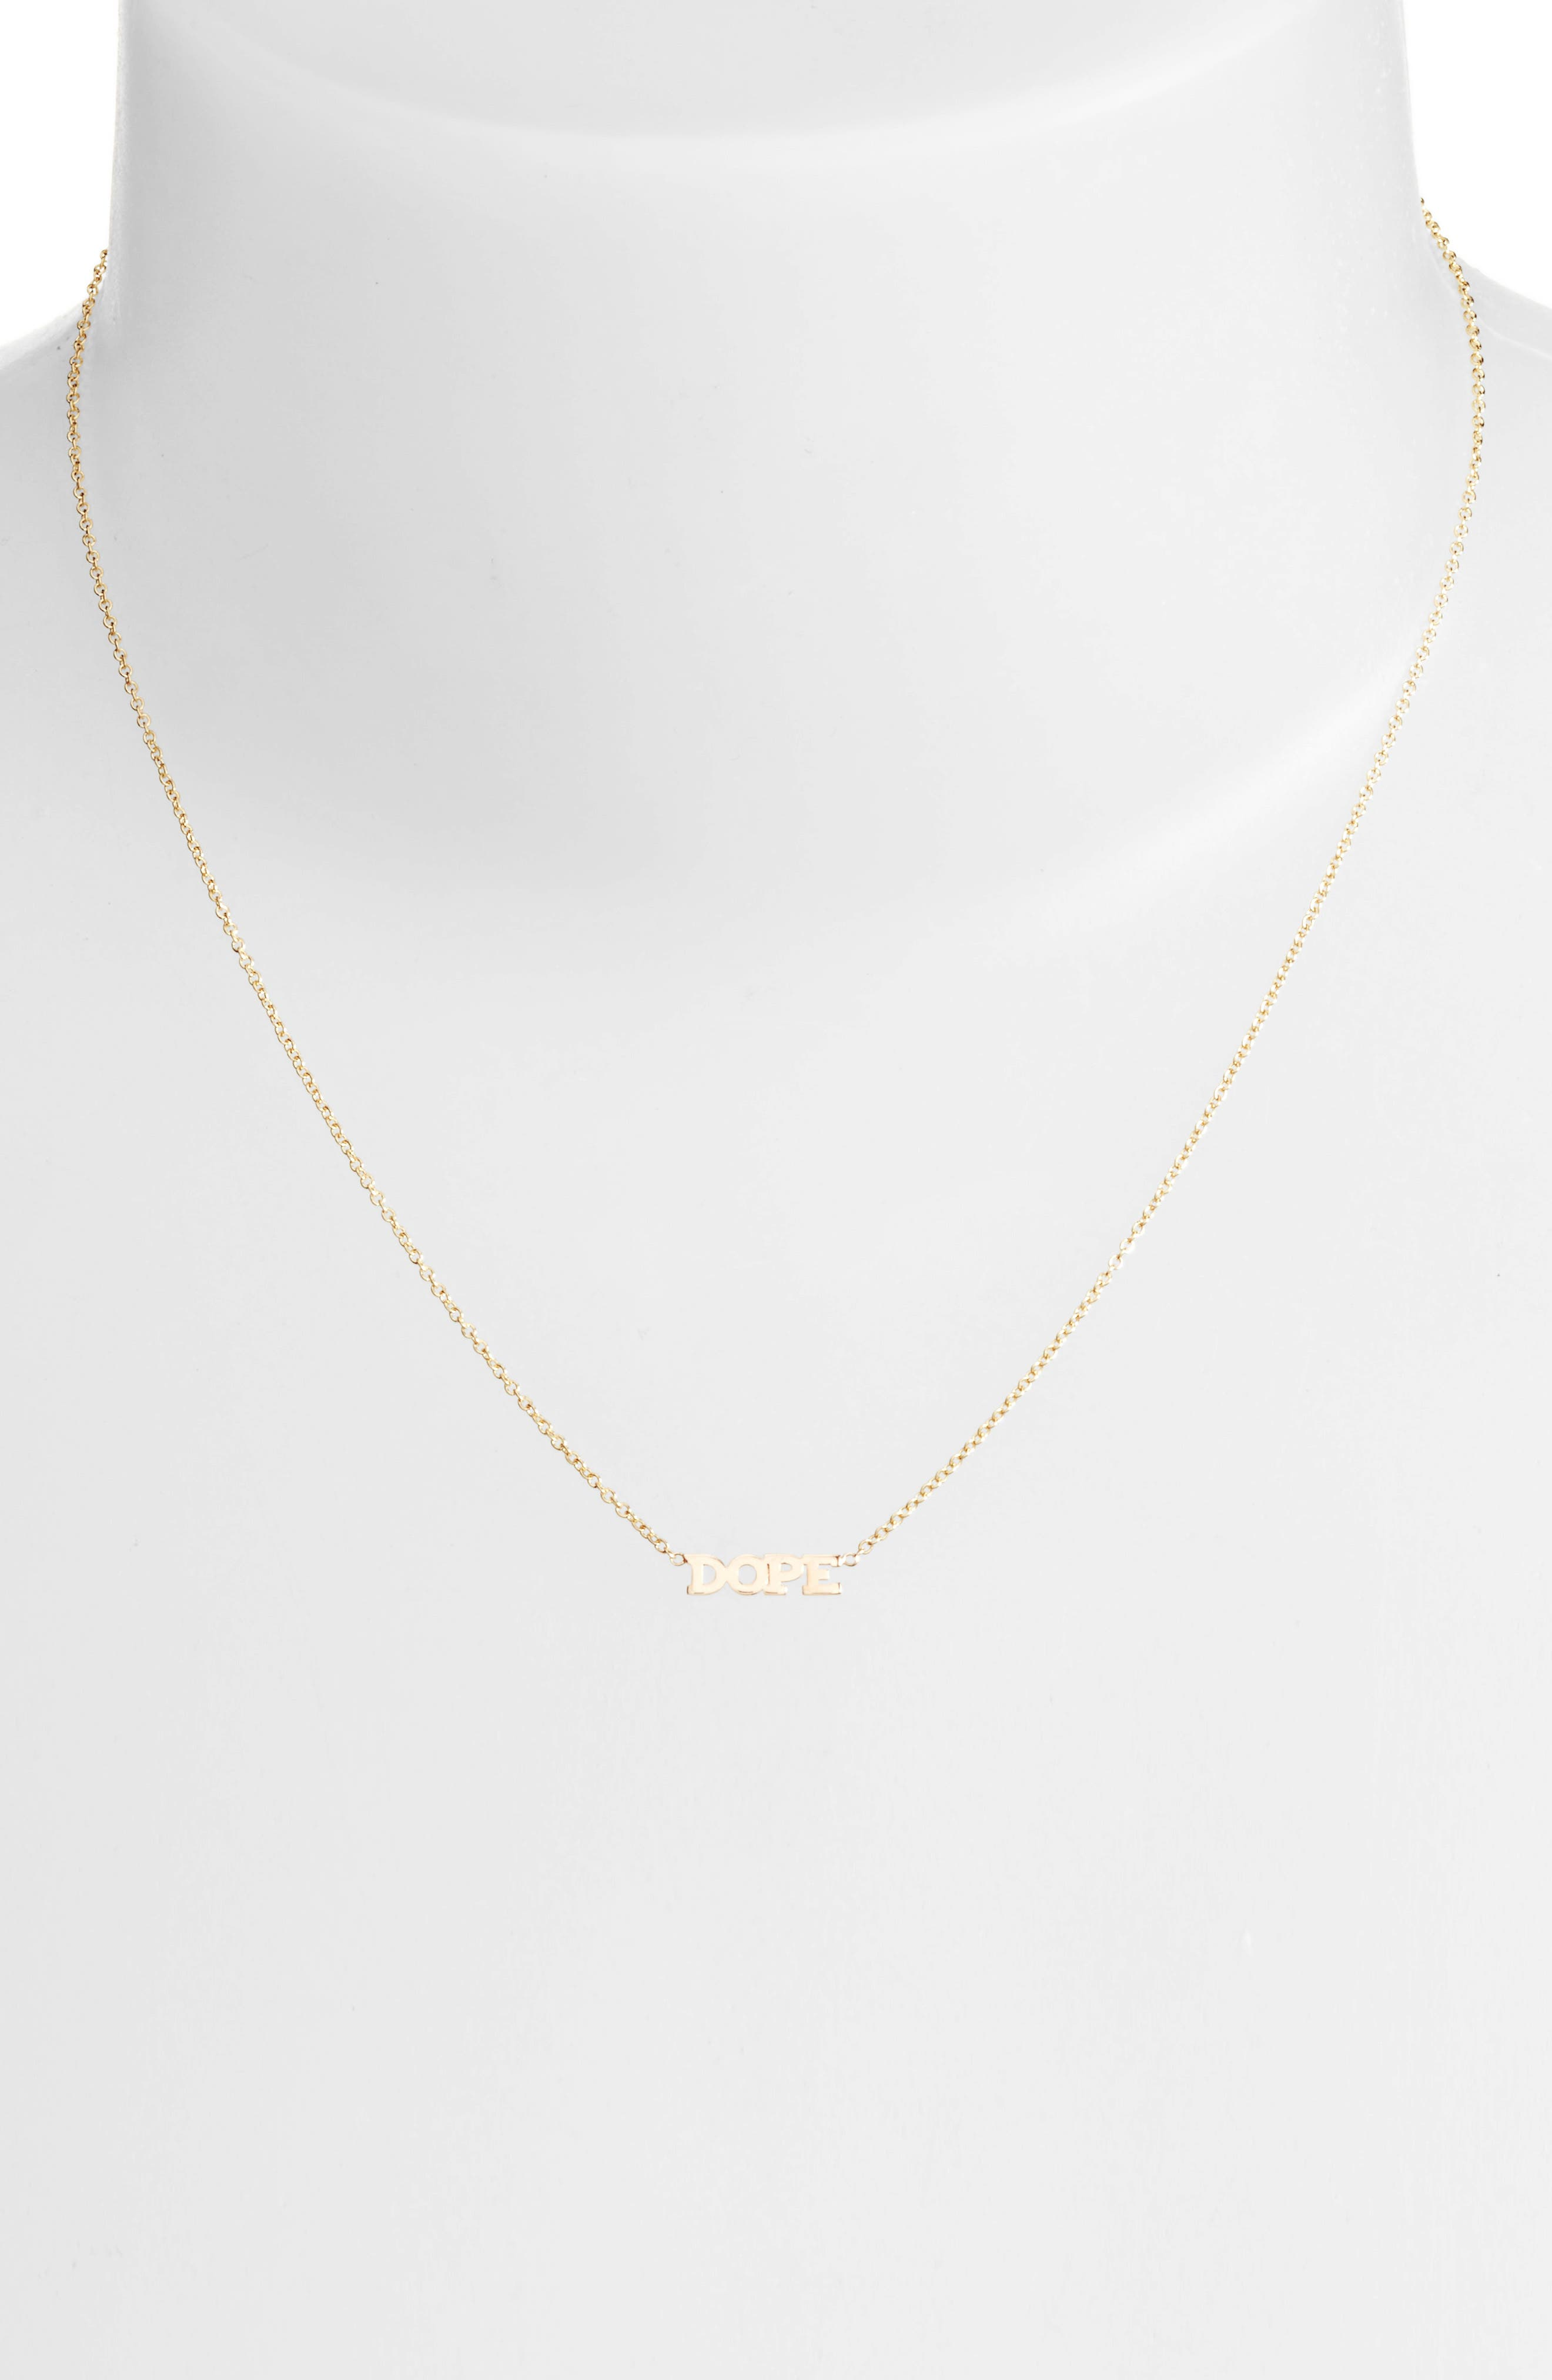 Itty Bitty Dope Pendant Necklace,                             Alternate thumbnail 2, color,                             YELLOW GOLD